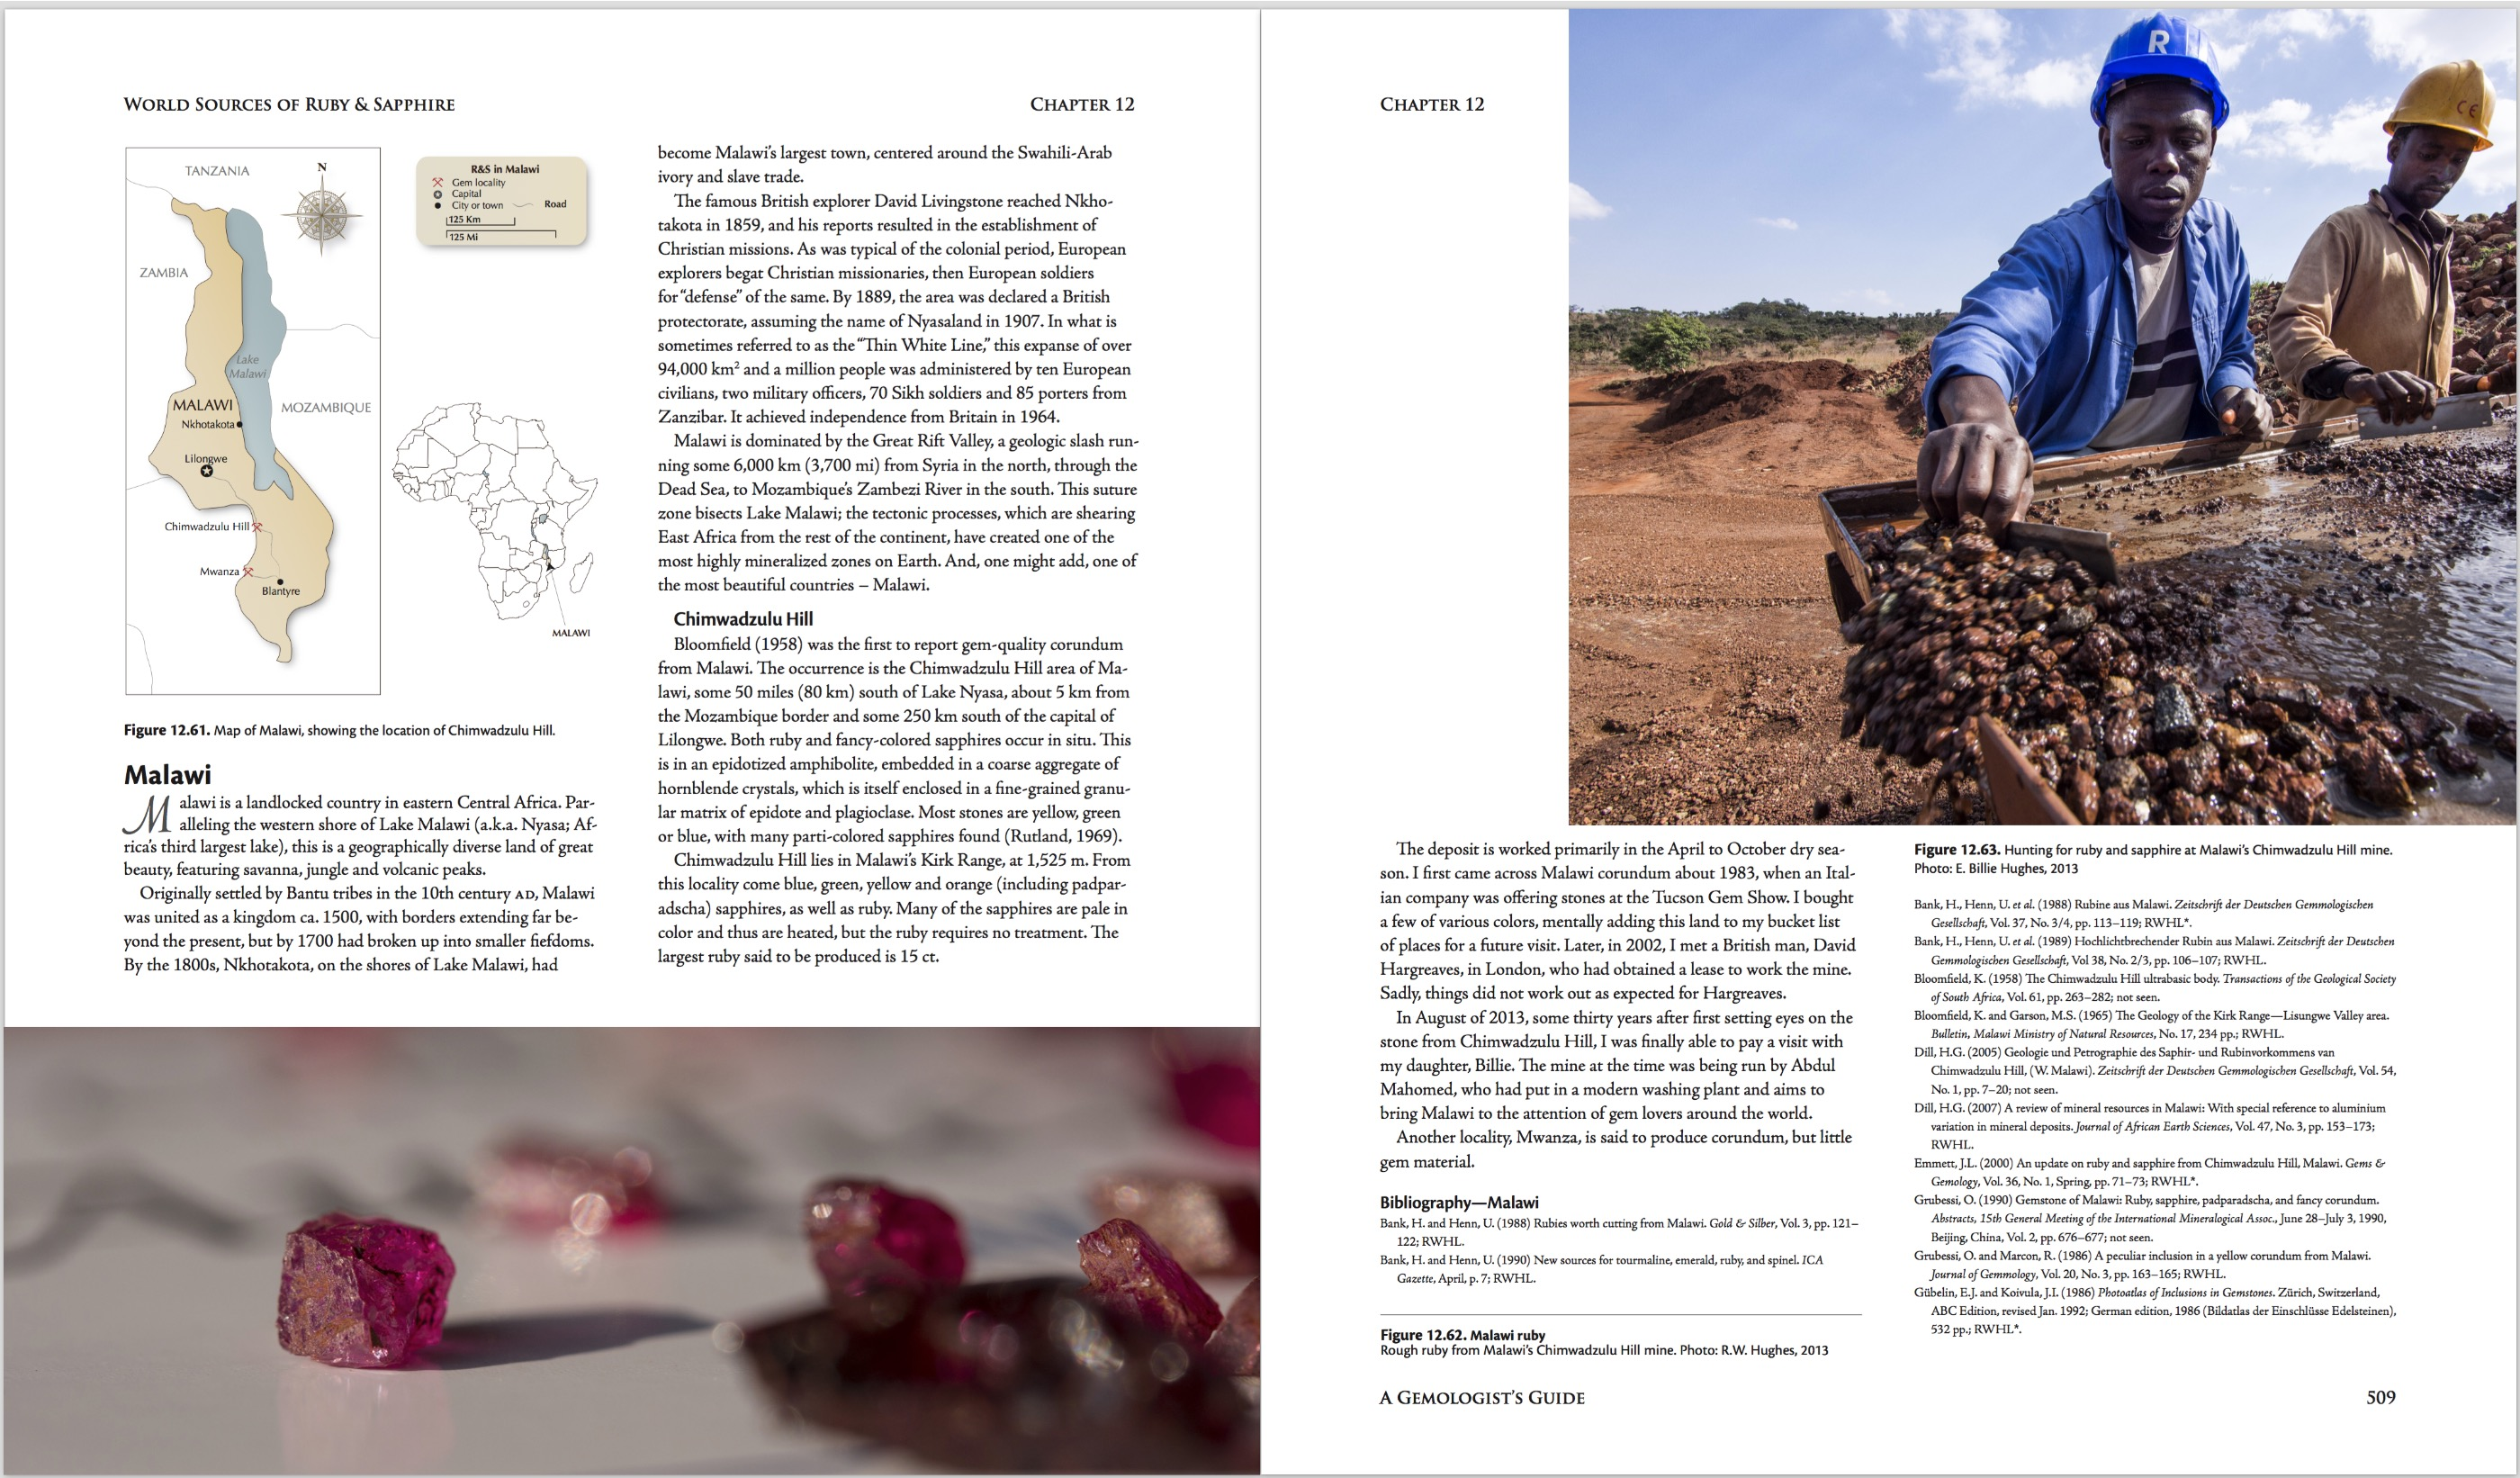 Ruby & Sapphire: A Gemologist's Guide – World Sources: Malawi